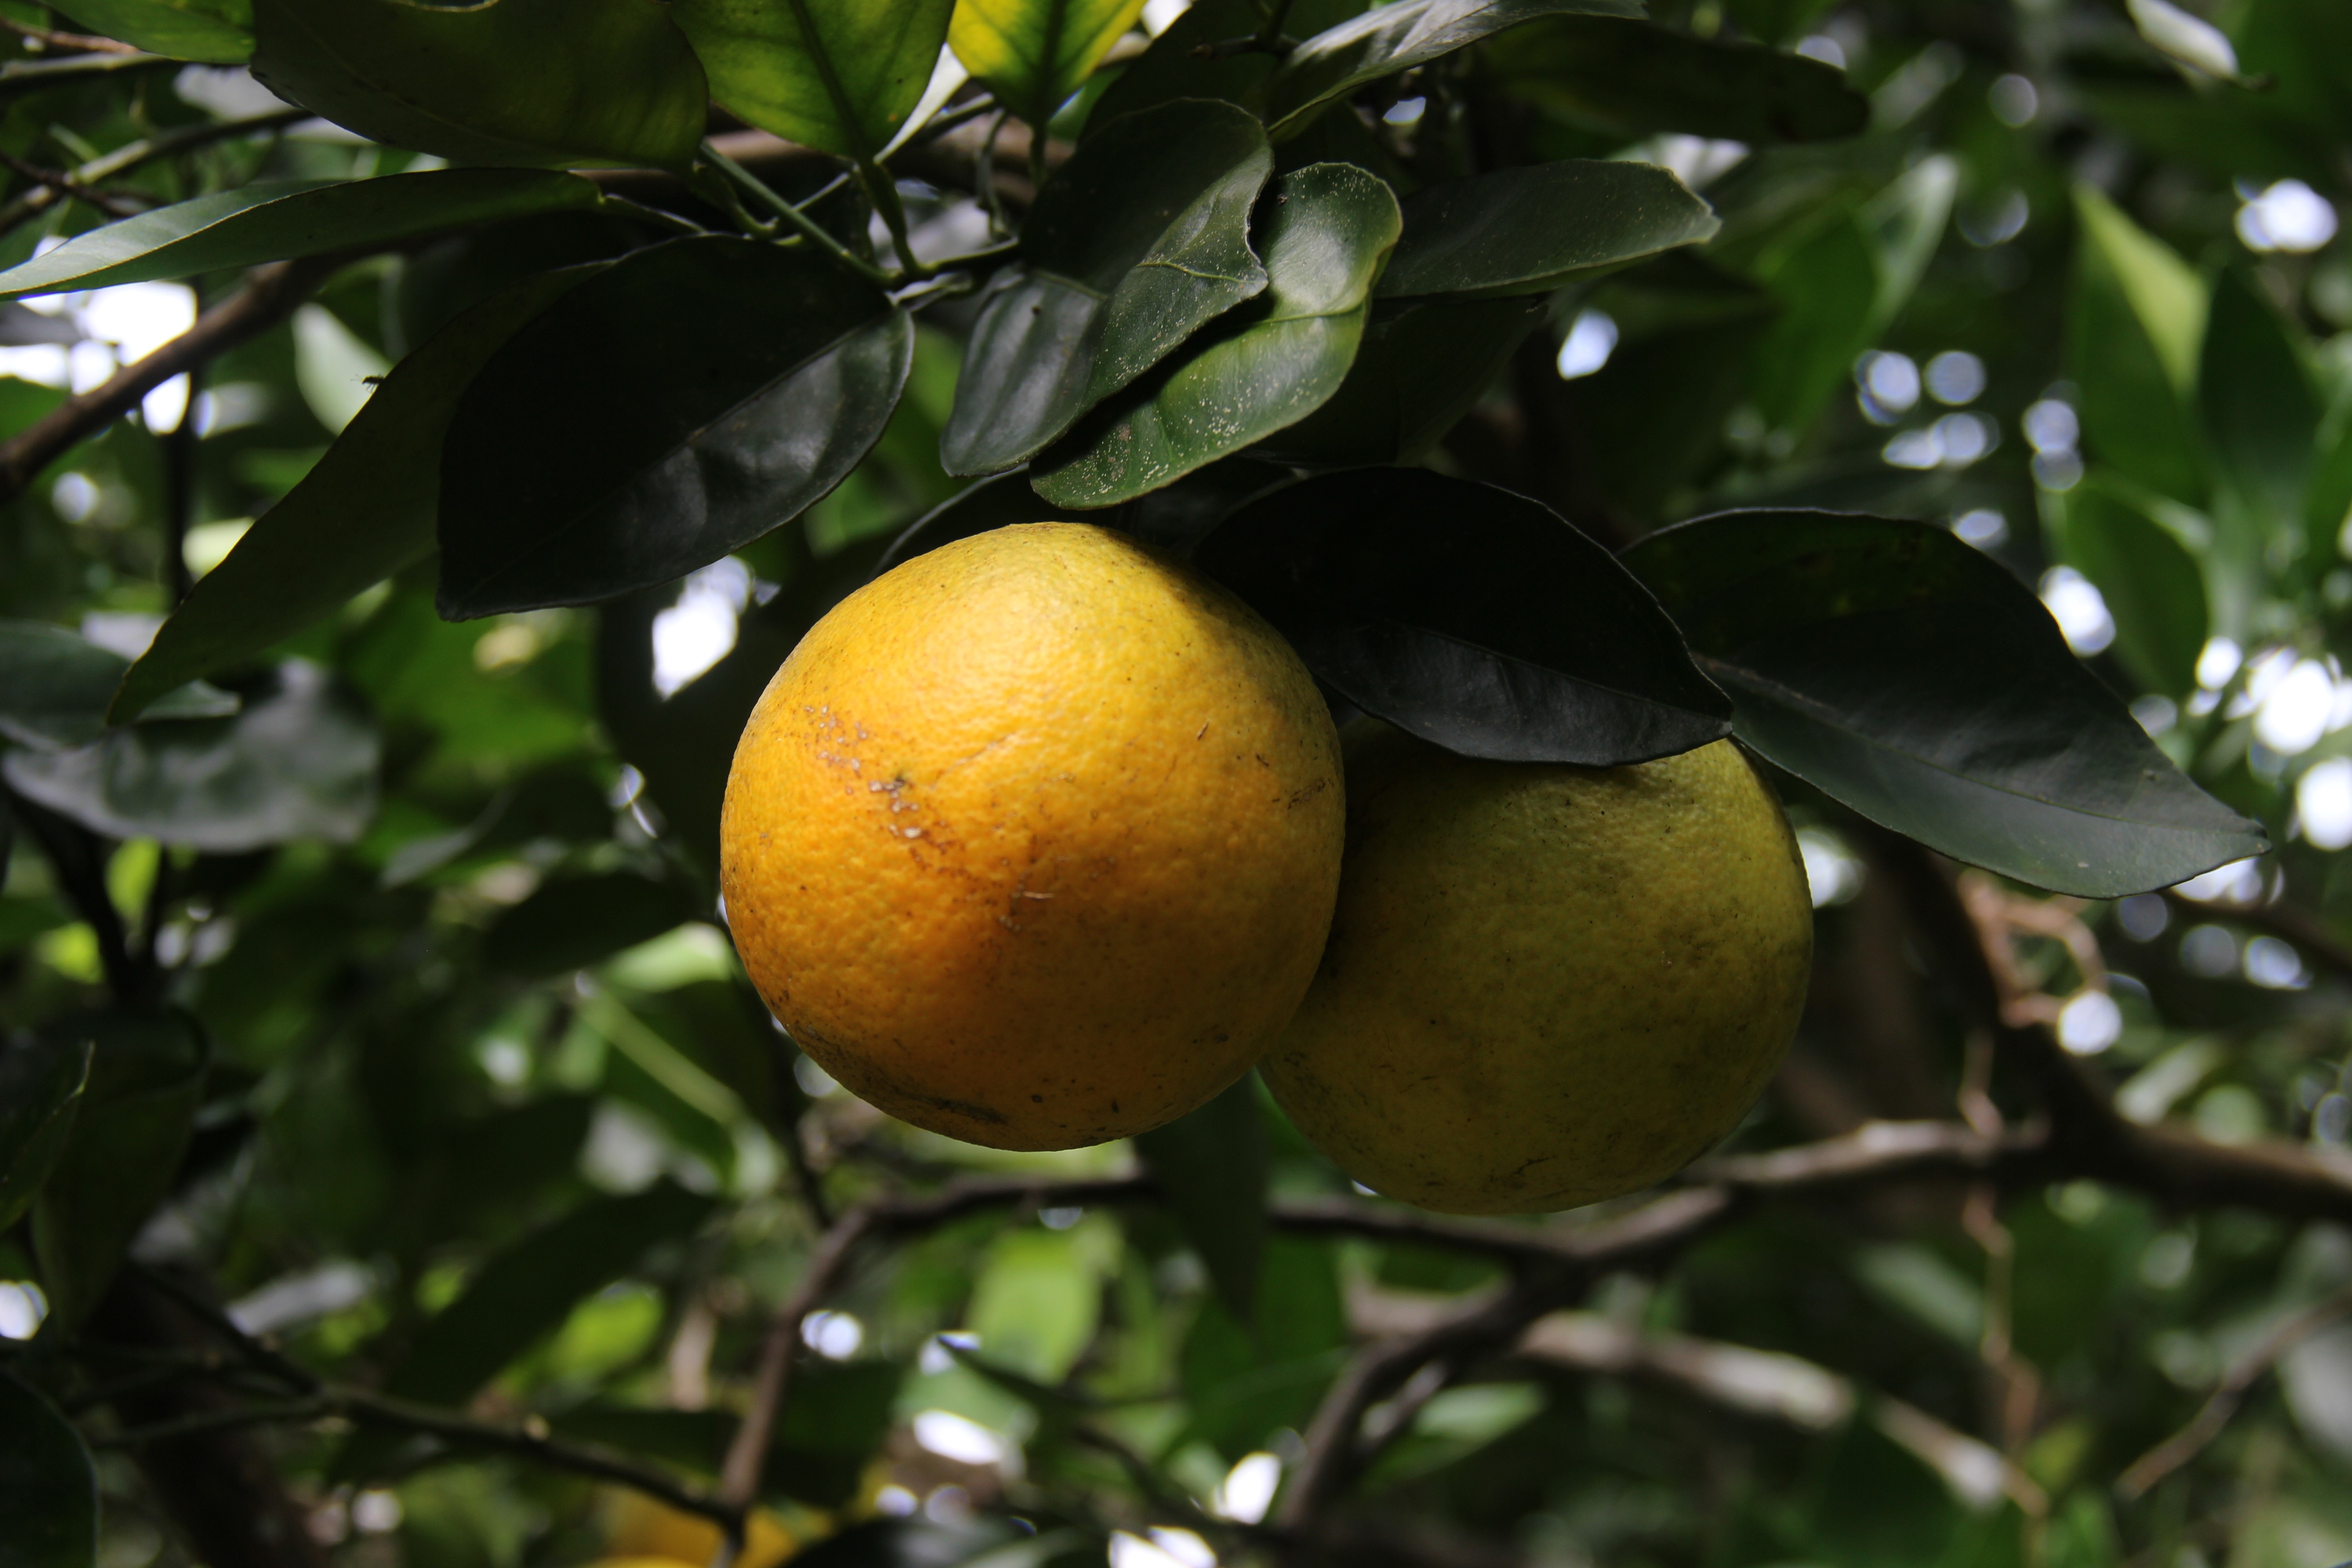 <p>An orange in Costa Rica. Photo: Stefanie Tye/WRI</p>